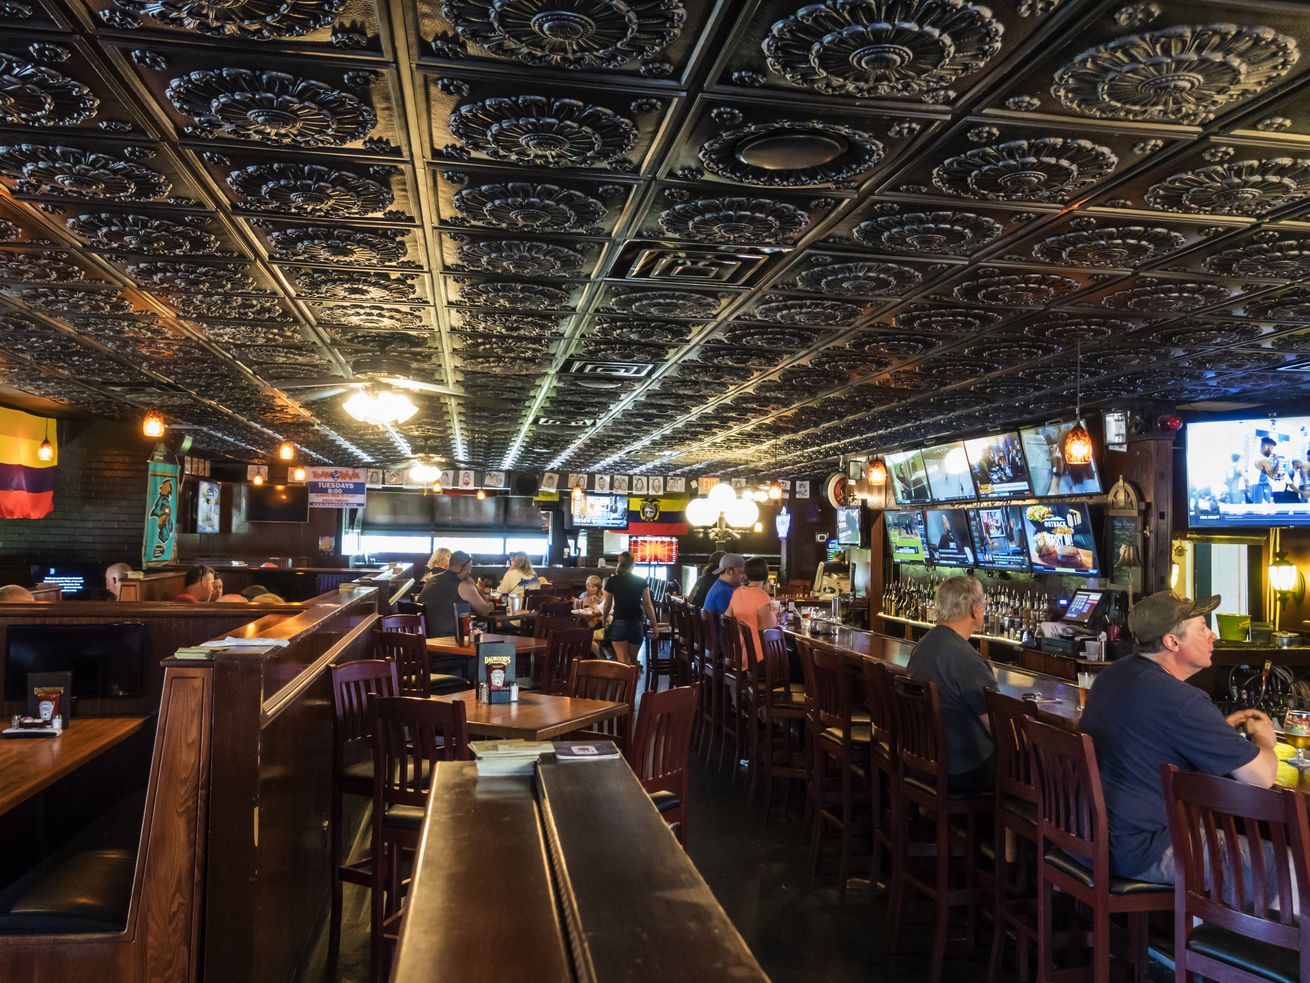 South Carolina, Myrtle Beach, Dagwood's Deli and Sports Bar, casual dining with tin metal tile ceiling